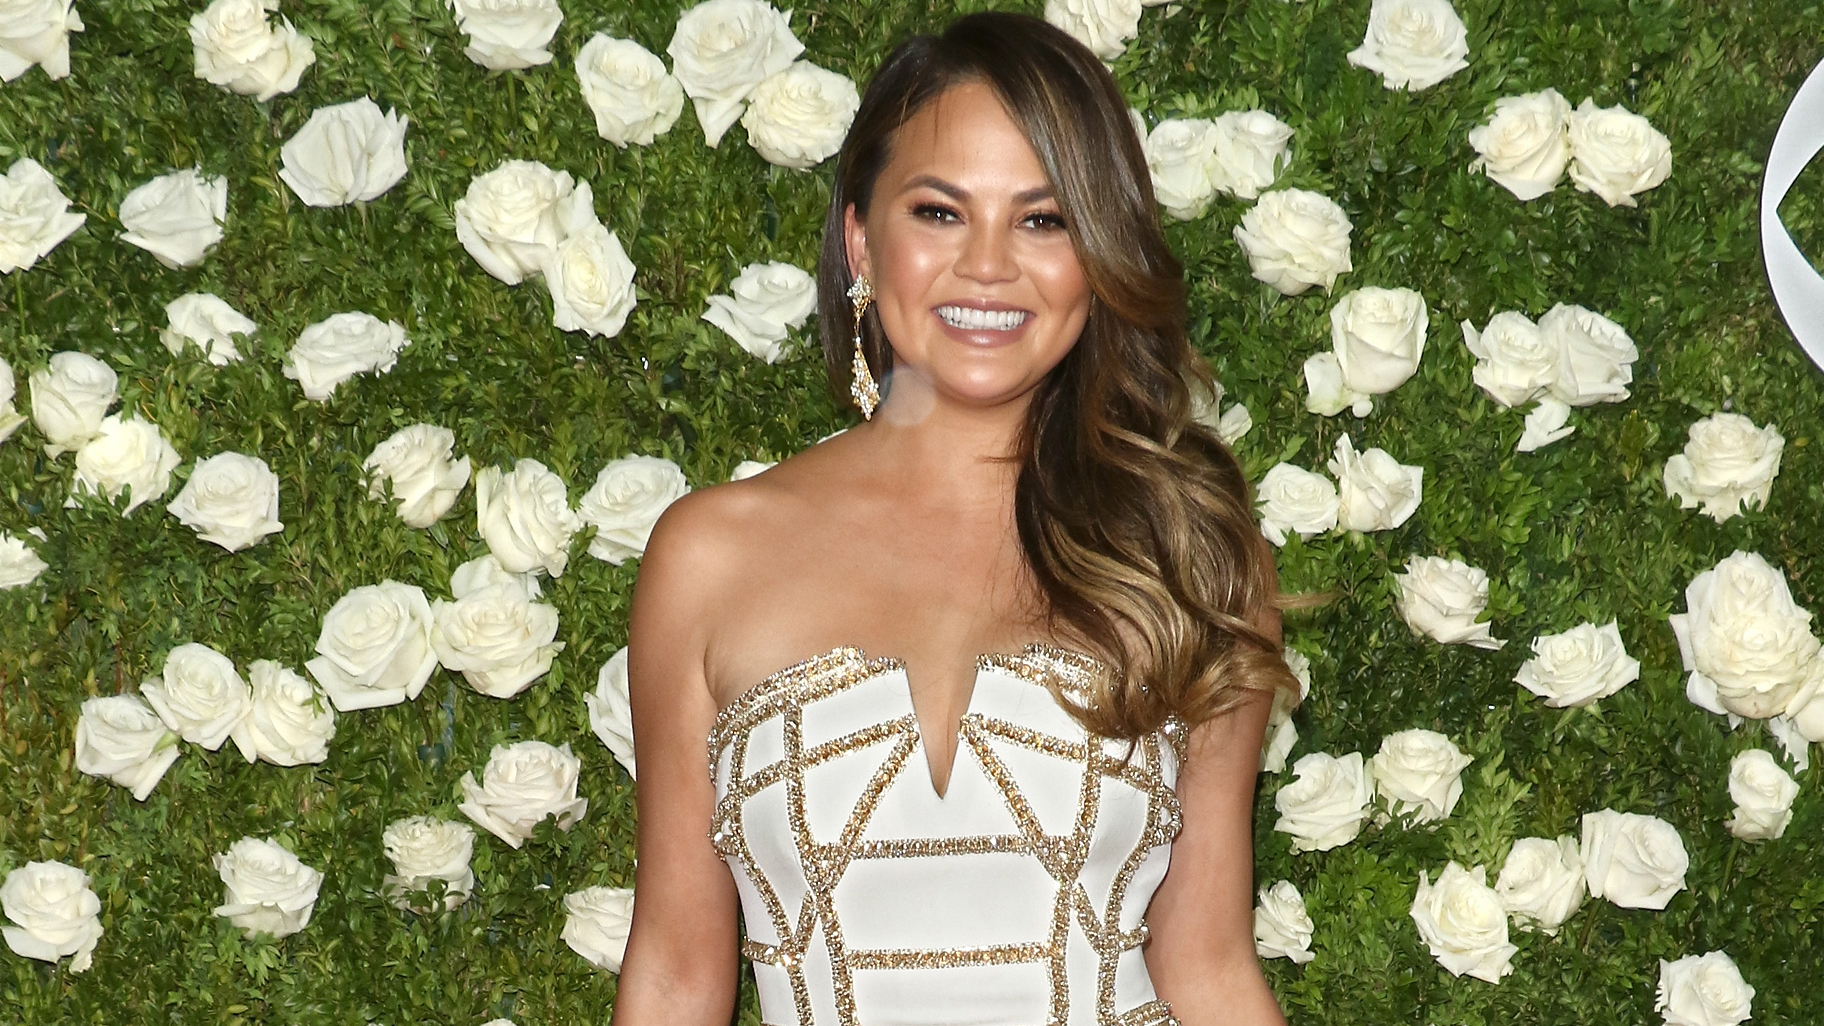 Chrissy Teigen Has Had a Secret Food Blog Since 2011, and We Just Found Out